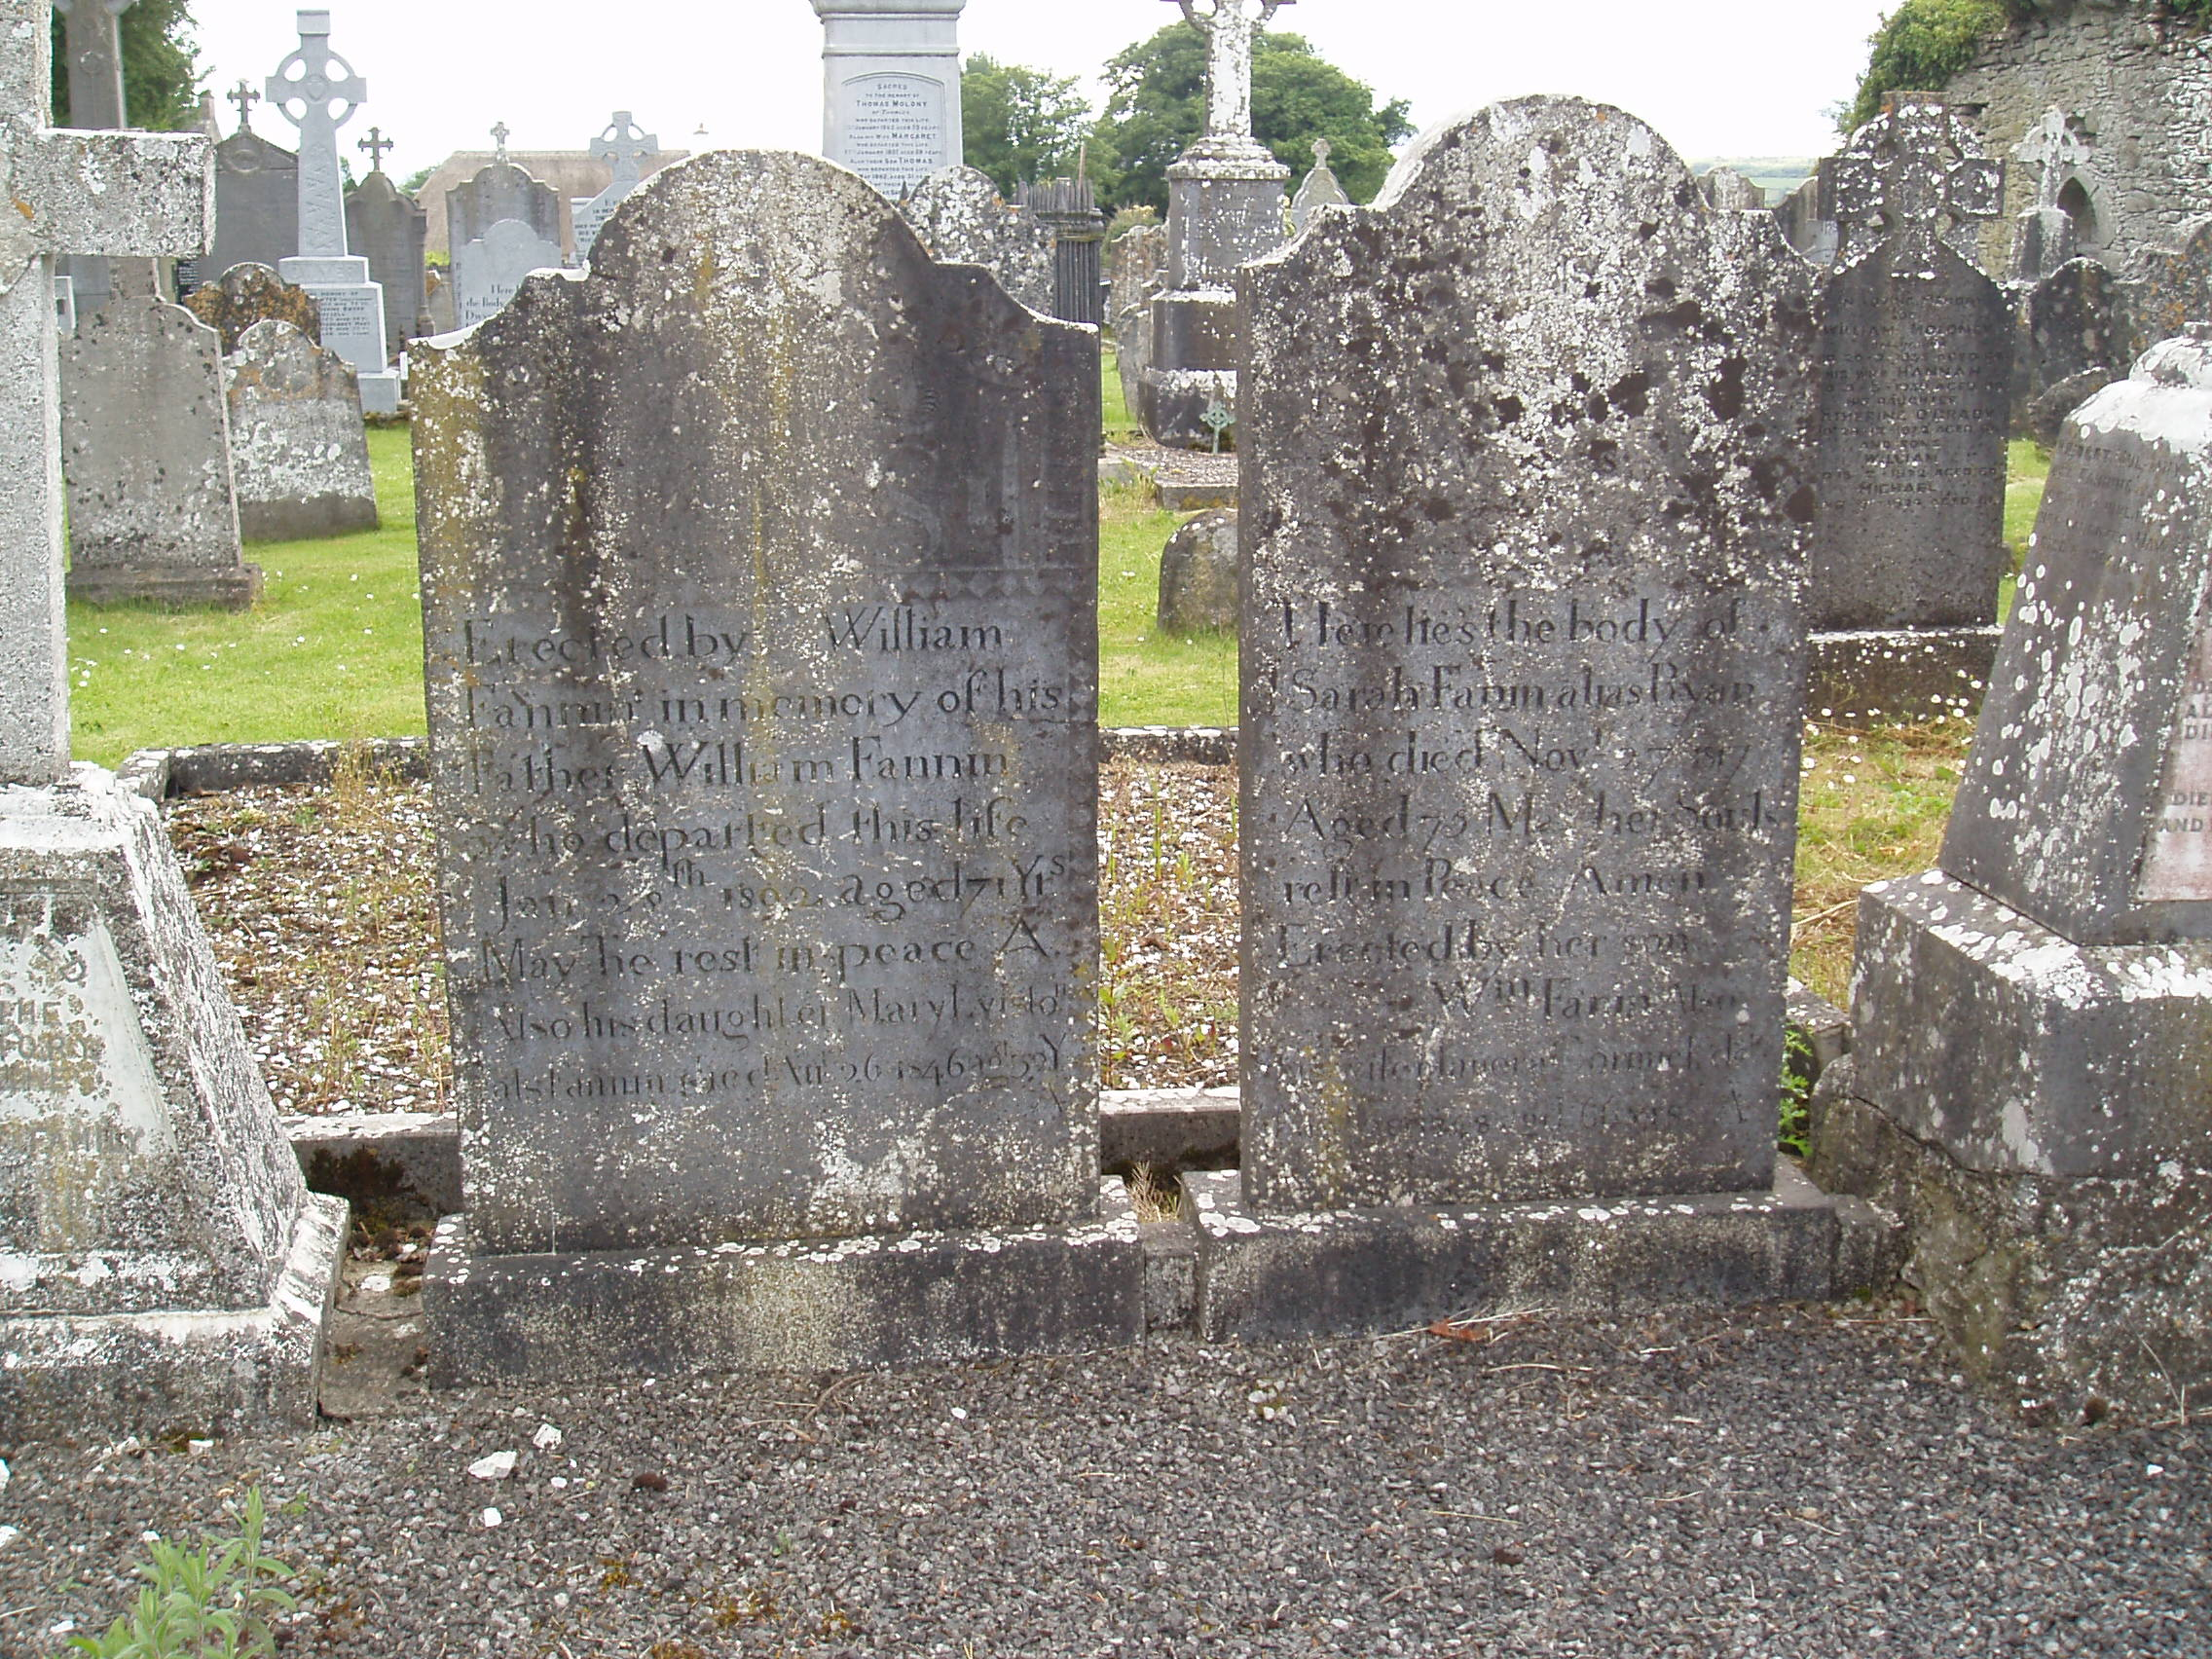 Gravestones of William Fannin died 1802 and his wife Sarah Fannin died 1817 both of Lissaroon.